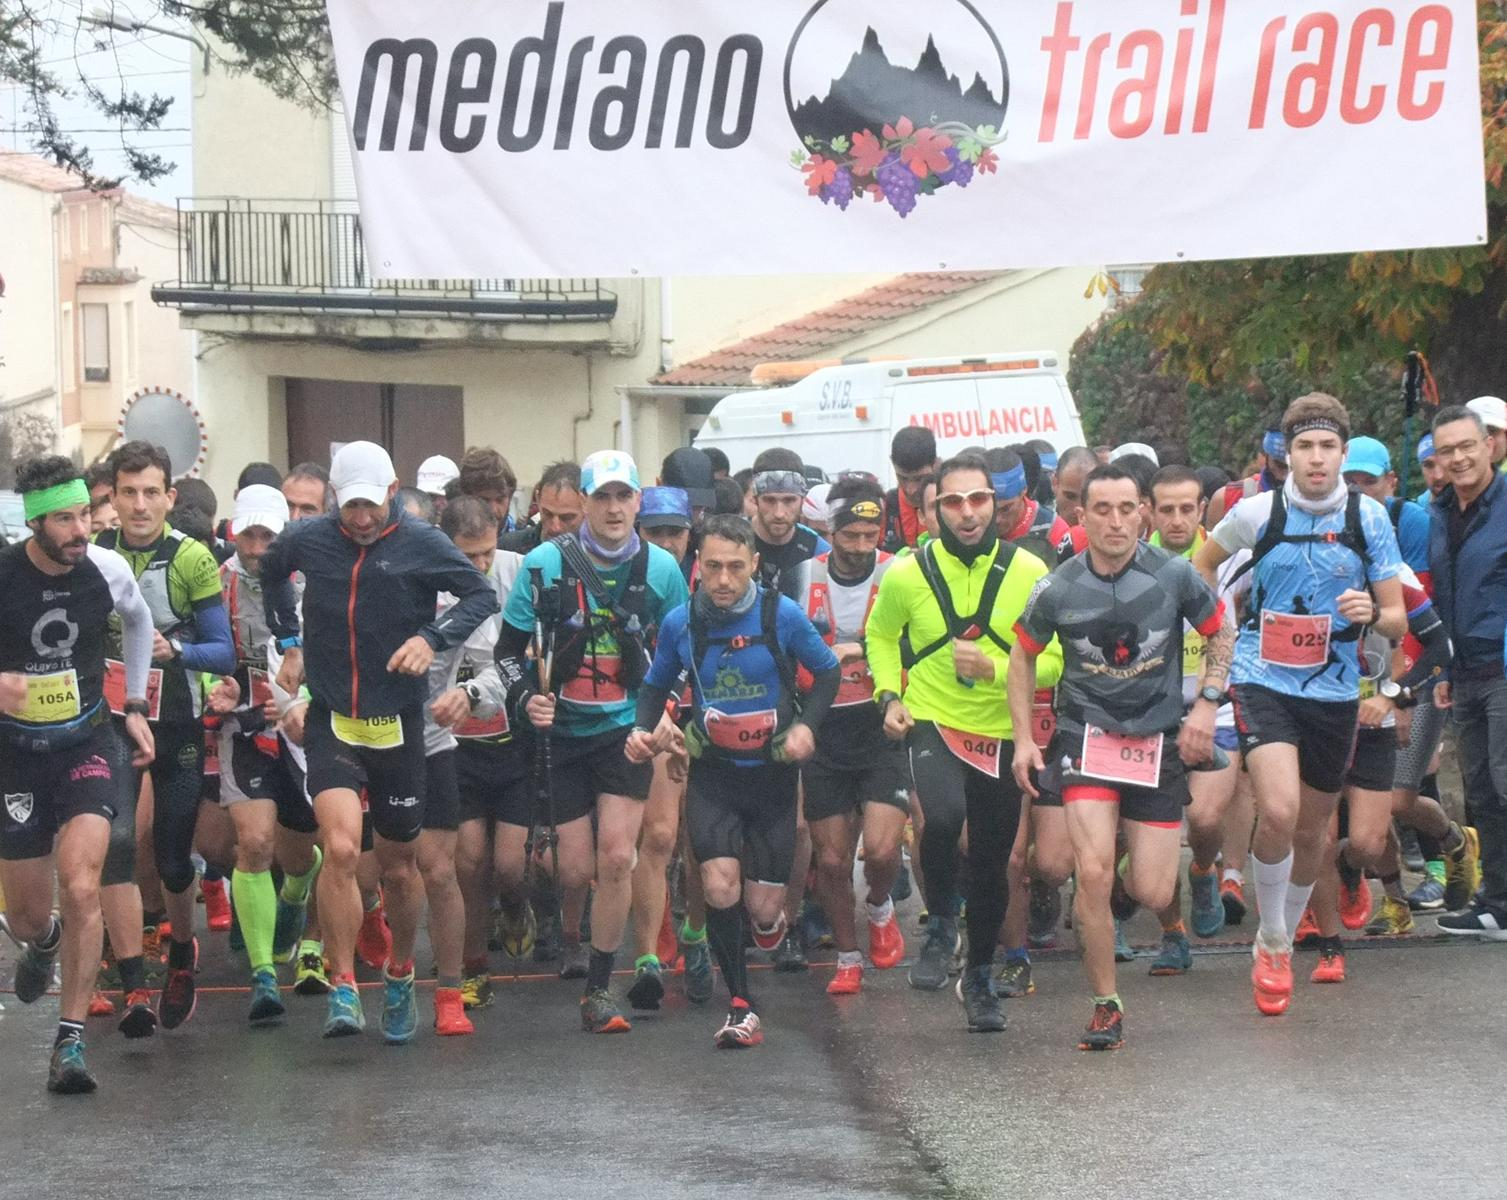 Фото MTR37 - Medrano Trail Race 2018